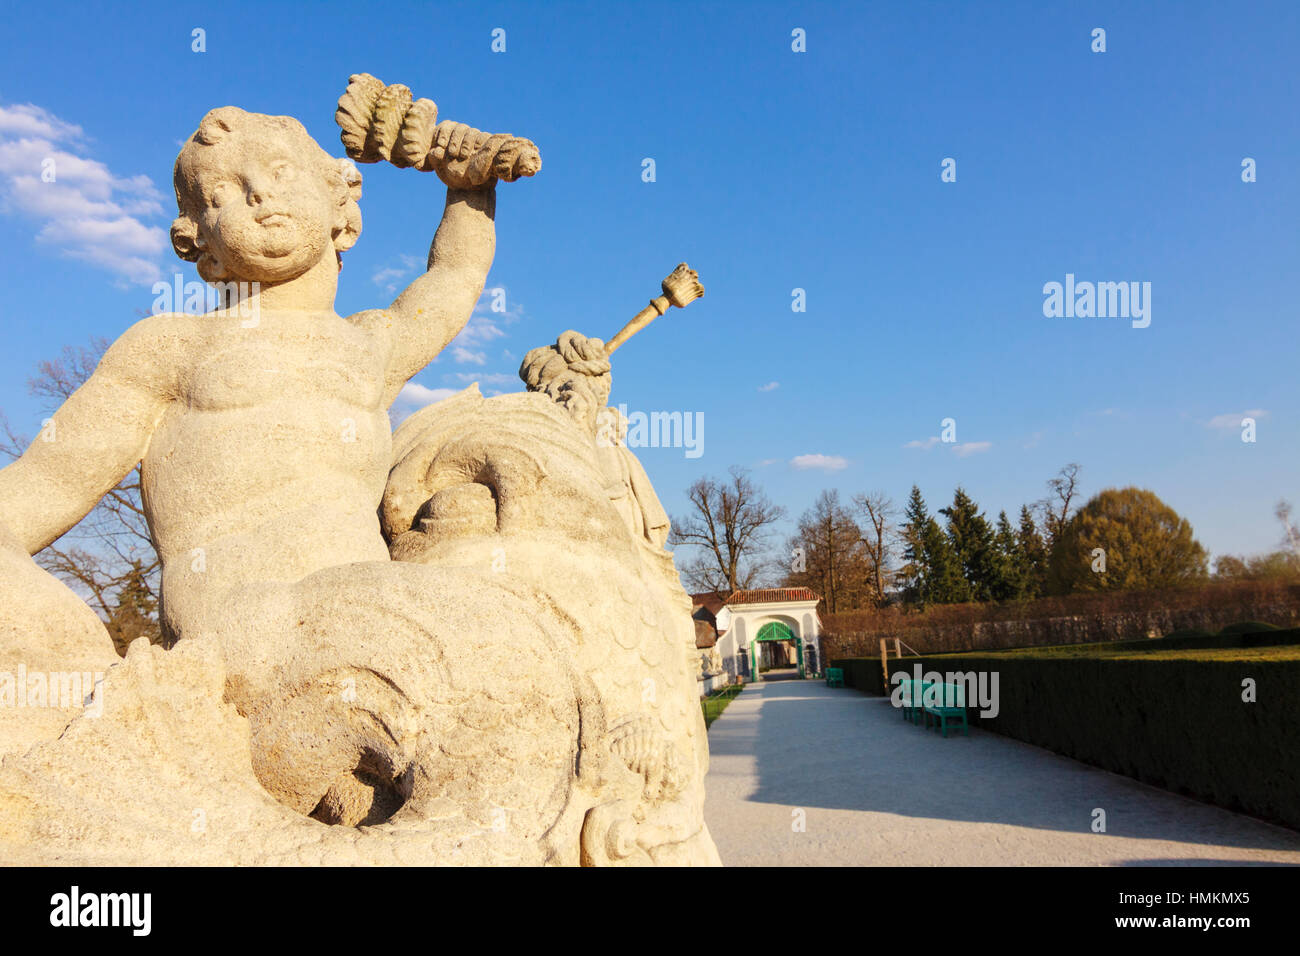 Baroque statues of the Cascade fountain in the gardens at the castle of Cesky Krumlov, Bohemia, Czech Republic - Stock Image